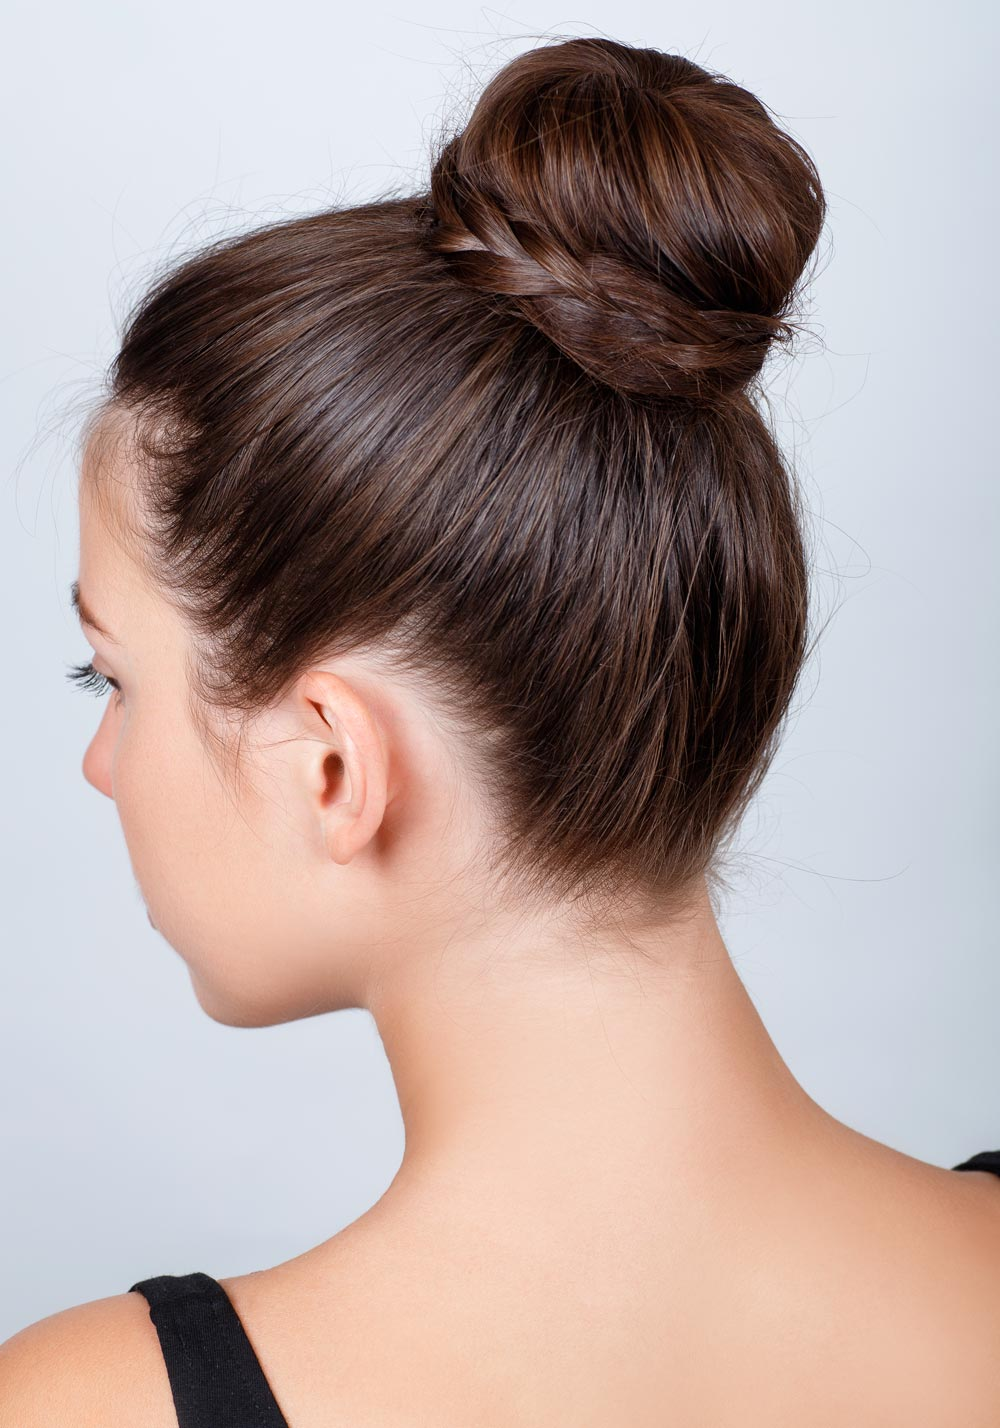 Chignon with braid